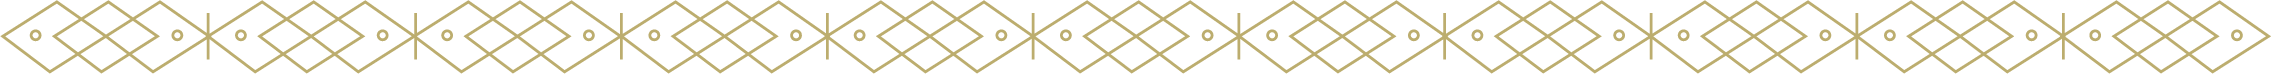 geo border_gold.png